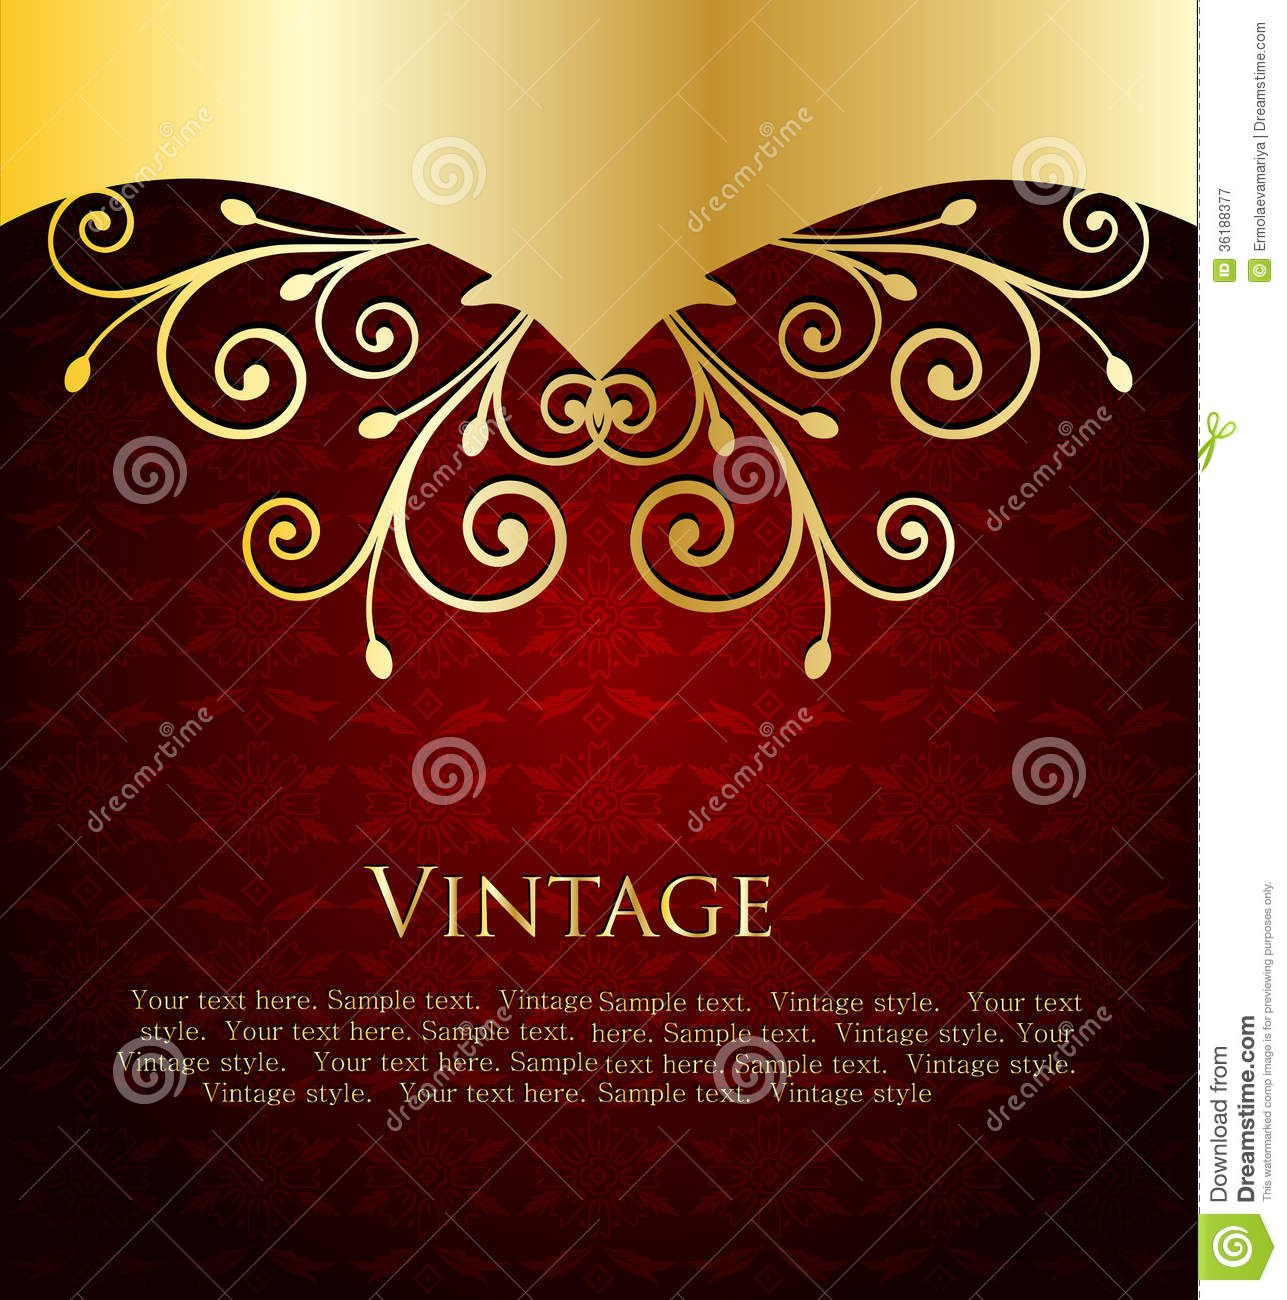 Red Label Template Vector Wine Sample Text Ideas Sensational Pertaining To Free Wedding Wine Label Template